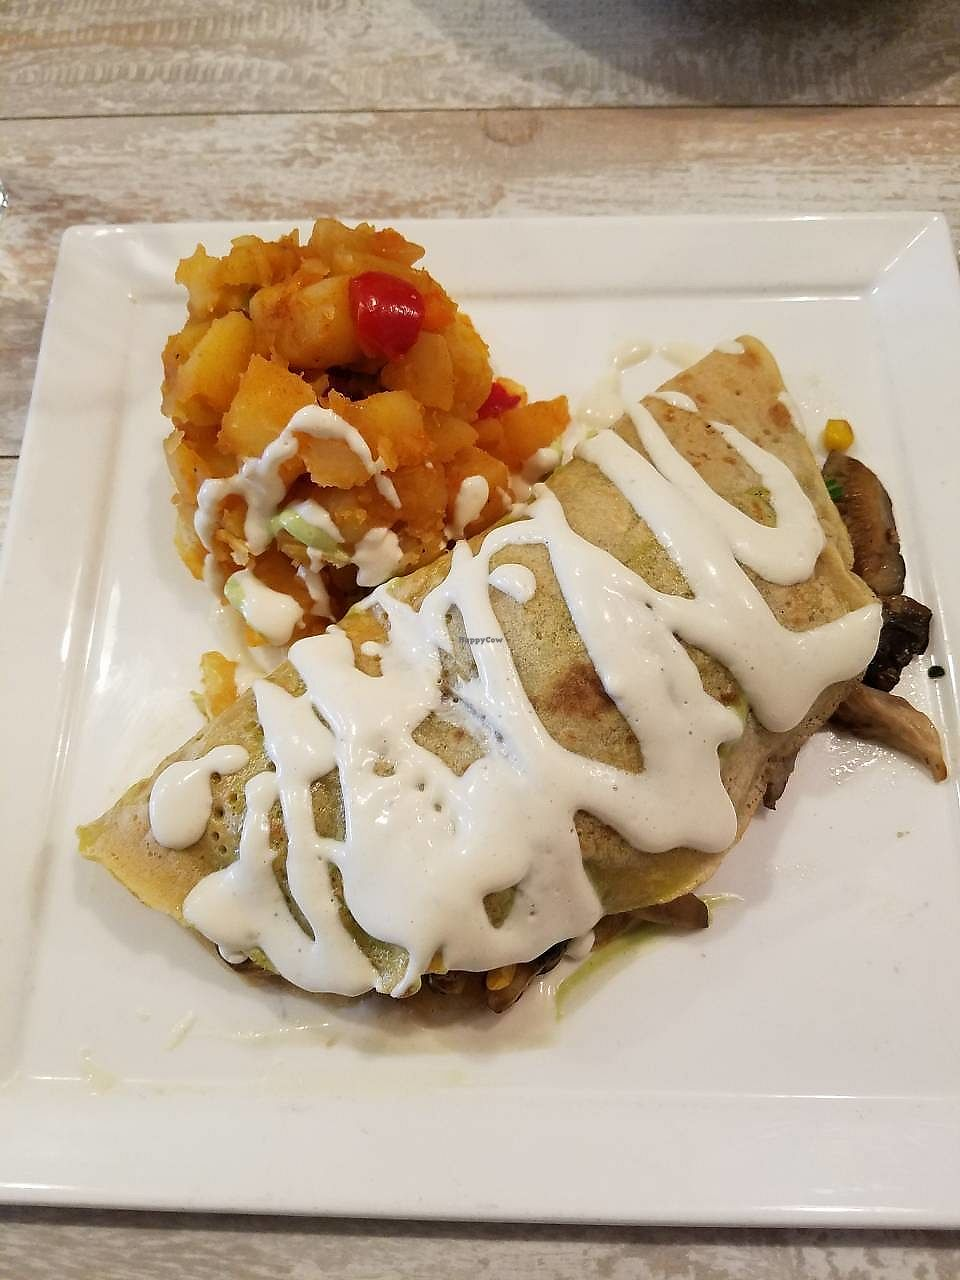 """Photo of Candle Cafe West  by <a href=""""/members/profile/Katyathevegan"""">Katyathevegan</a> <br/>Savory Crepe with home fries-- Finally! A vegan crepe! <br/> October 16, 2017  - <a href='/contact/abuse/image/31715/315726'>Report</a>"""